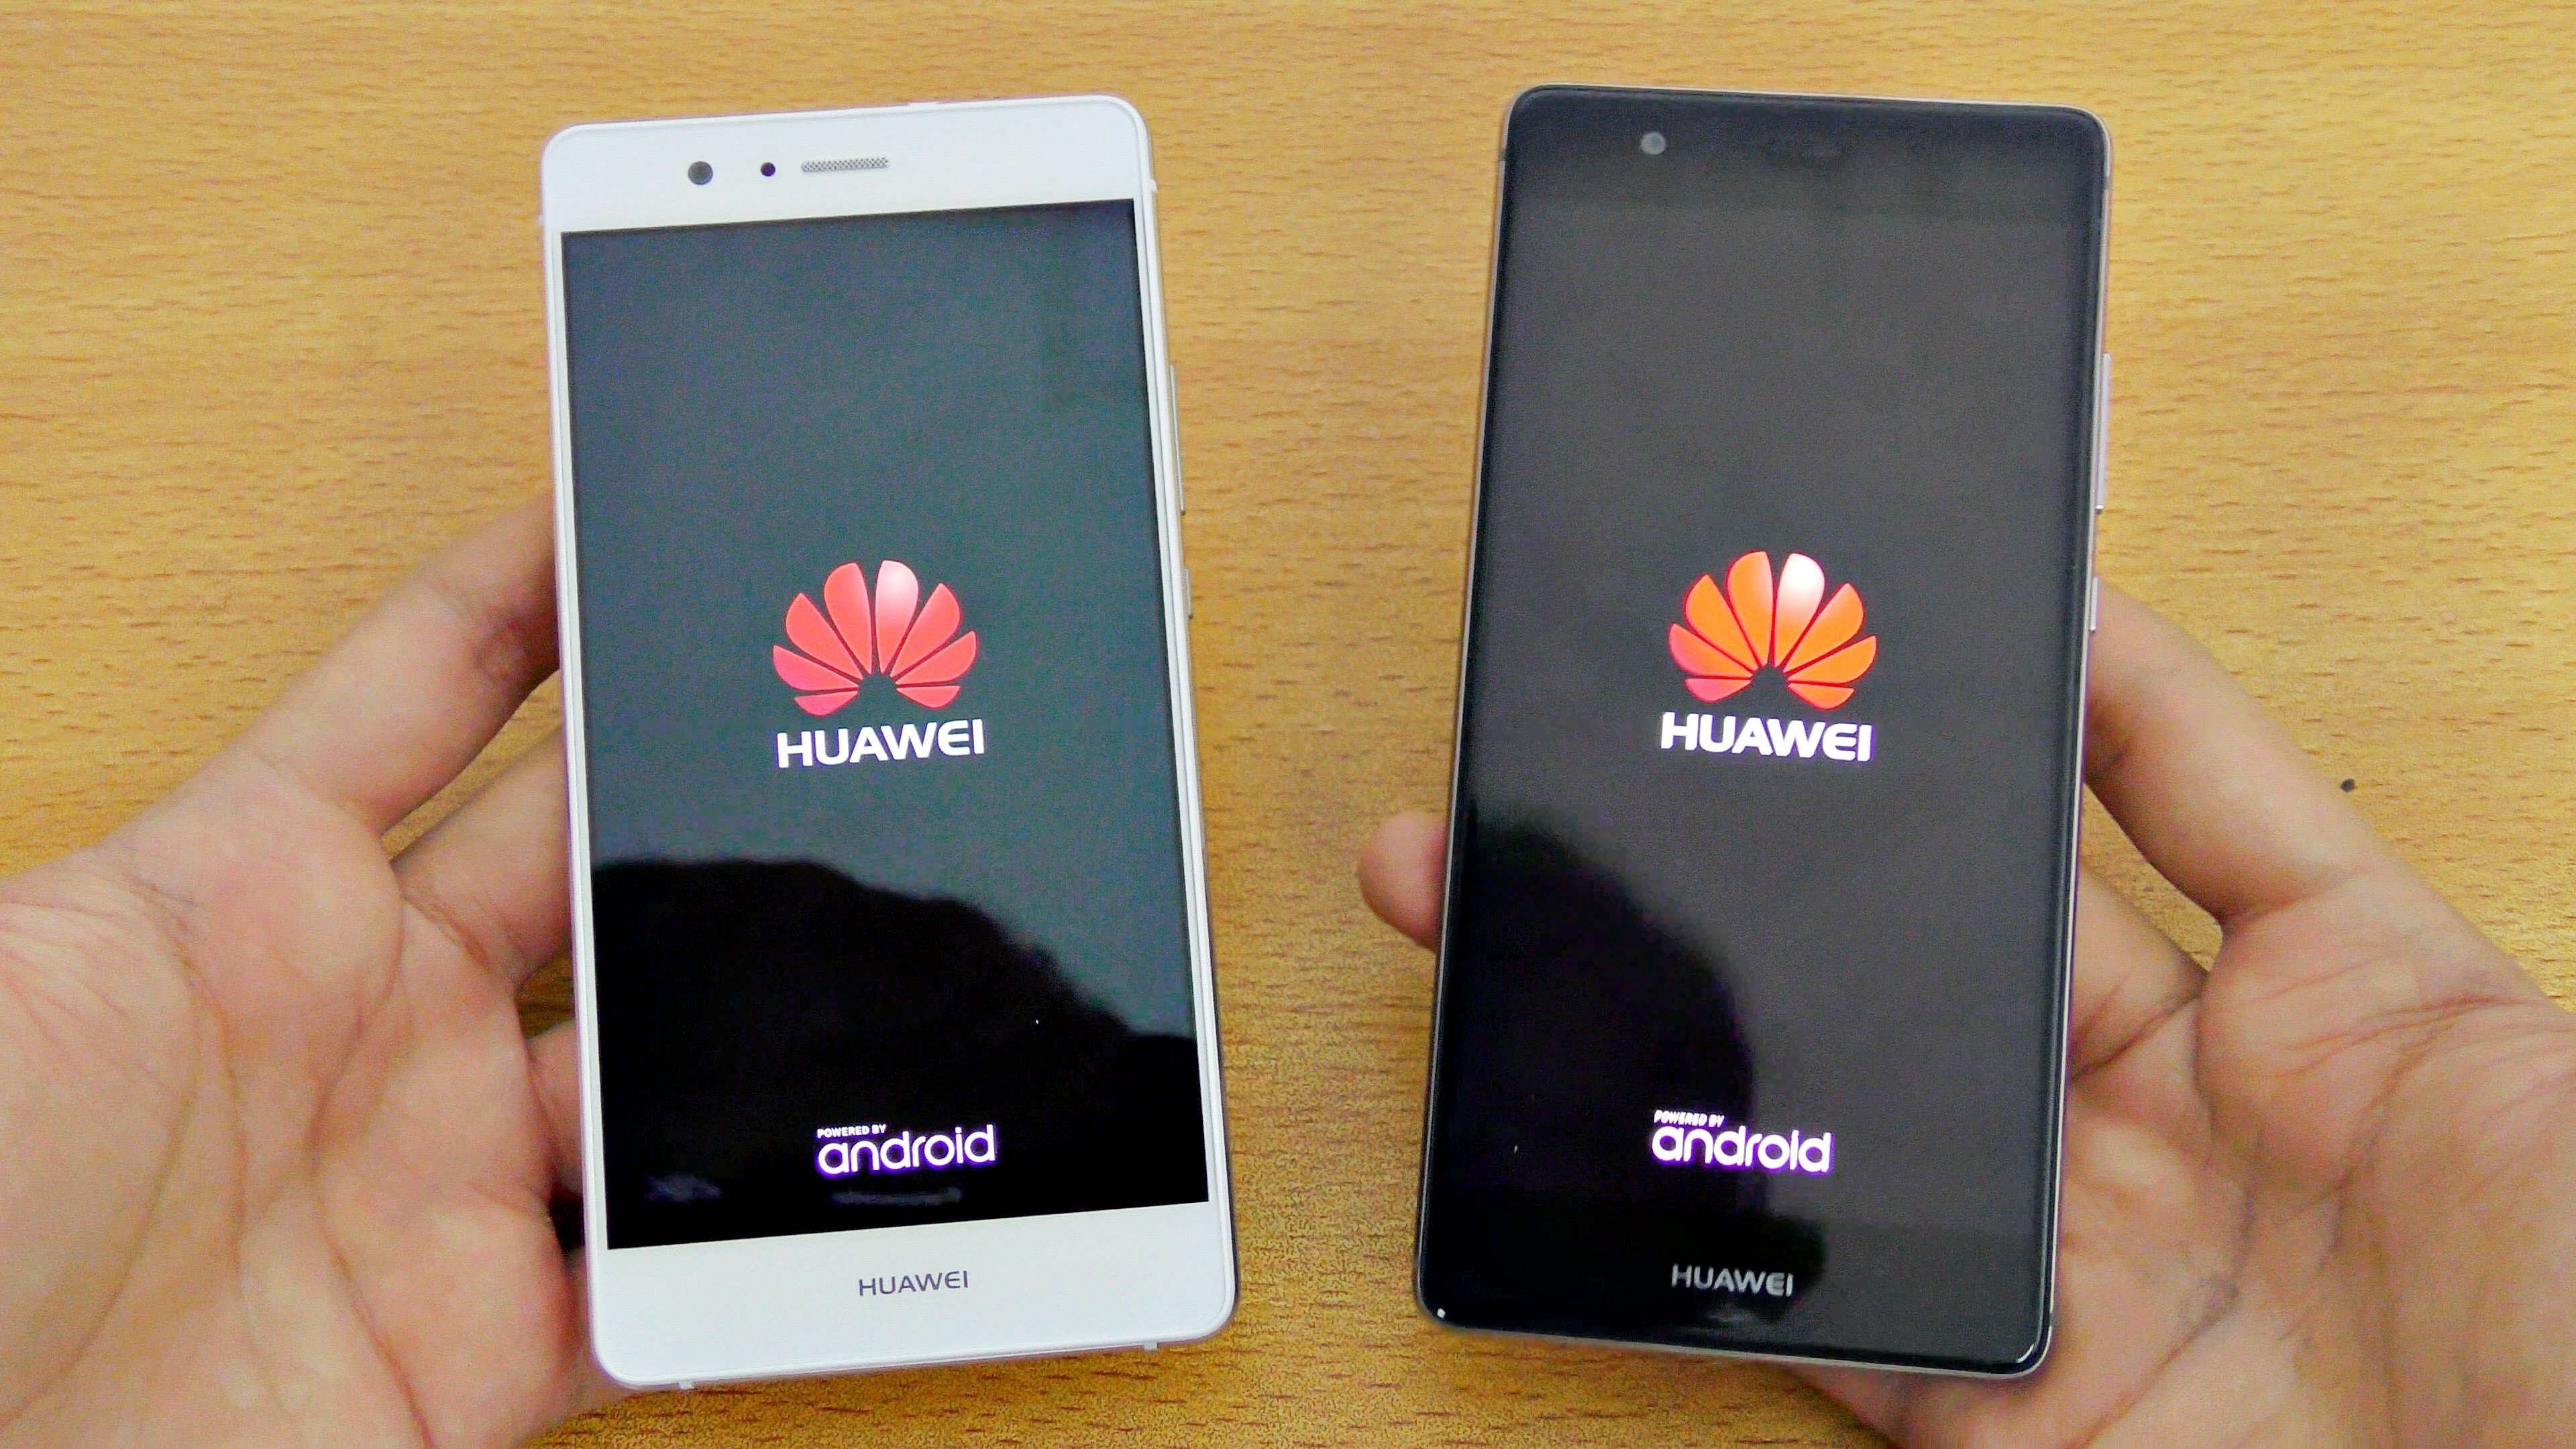 Huawei P9, P9 Plus and Huawei P9 lite: Which Smartphone to go for